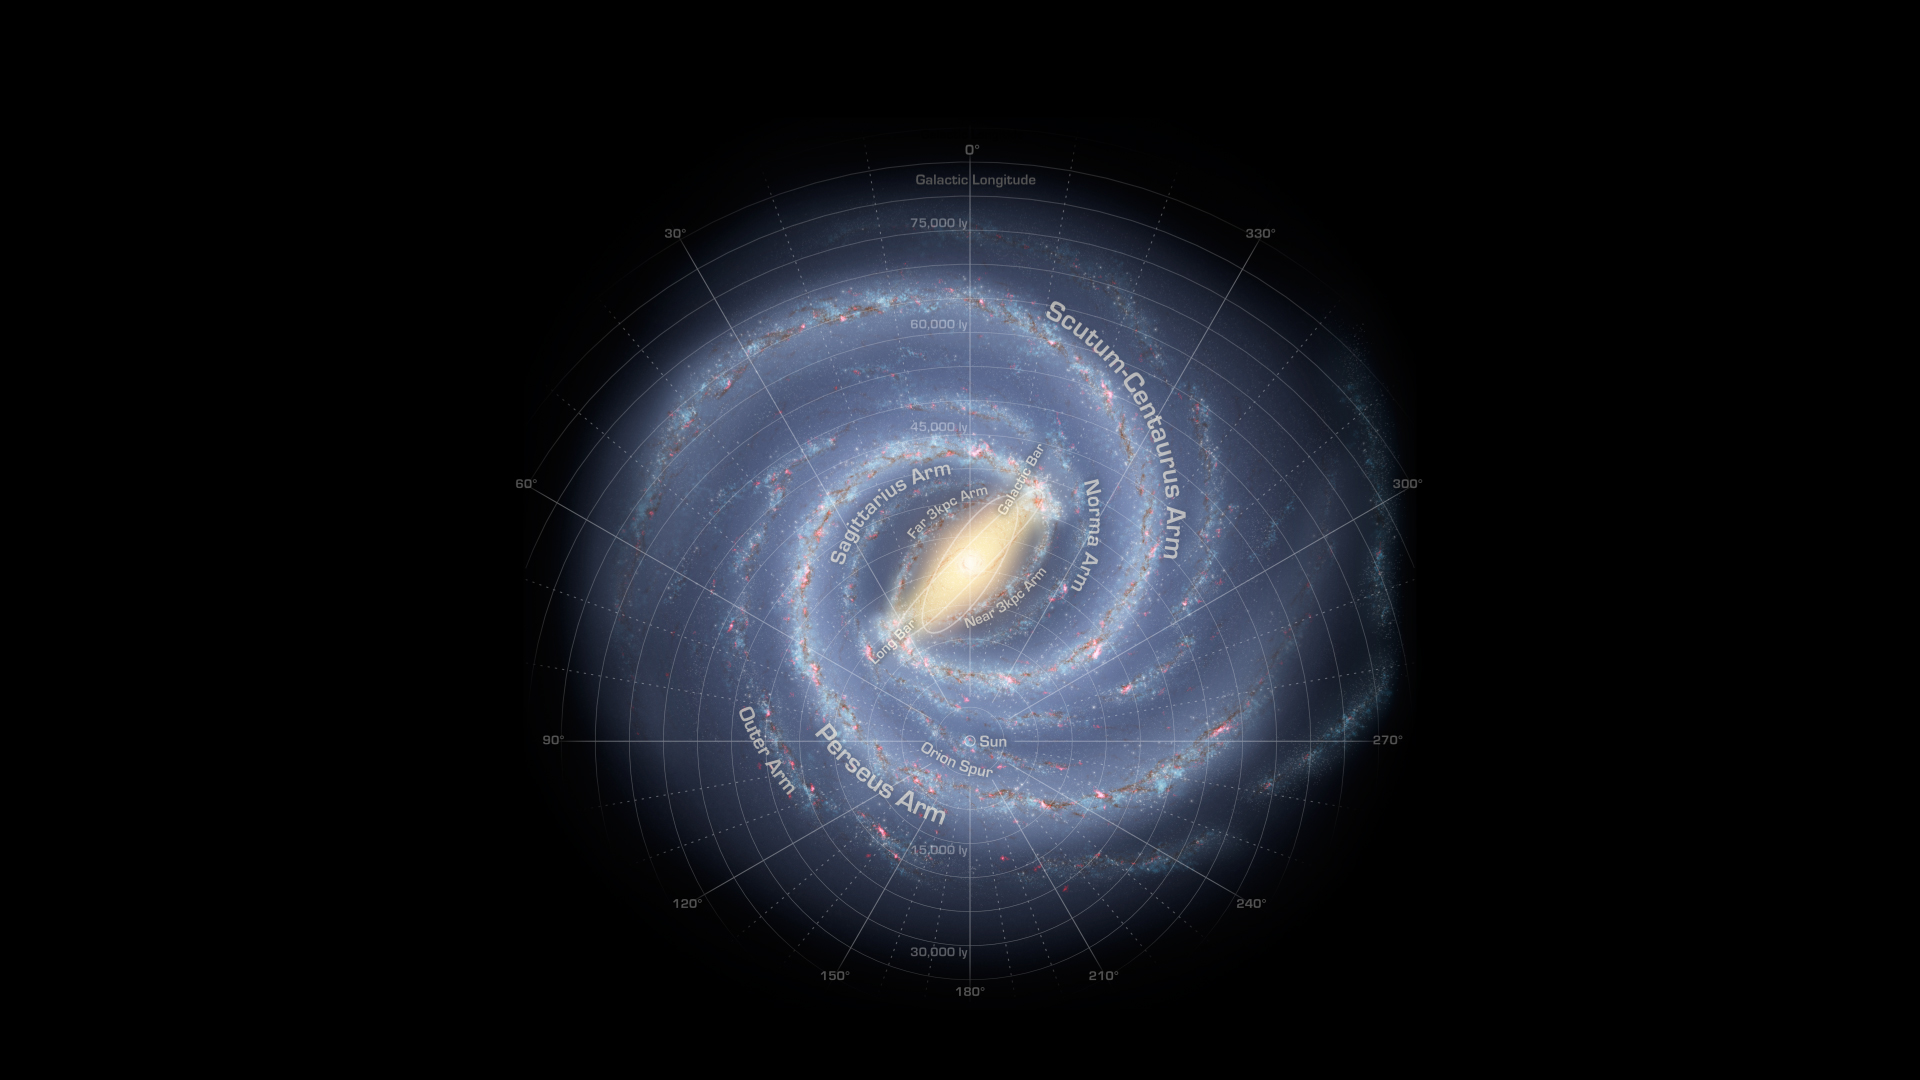 Milky Way Quiz: Test Your Galaxy Smarts